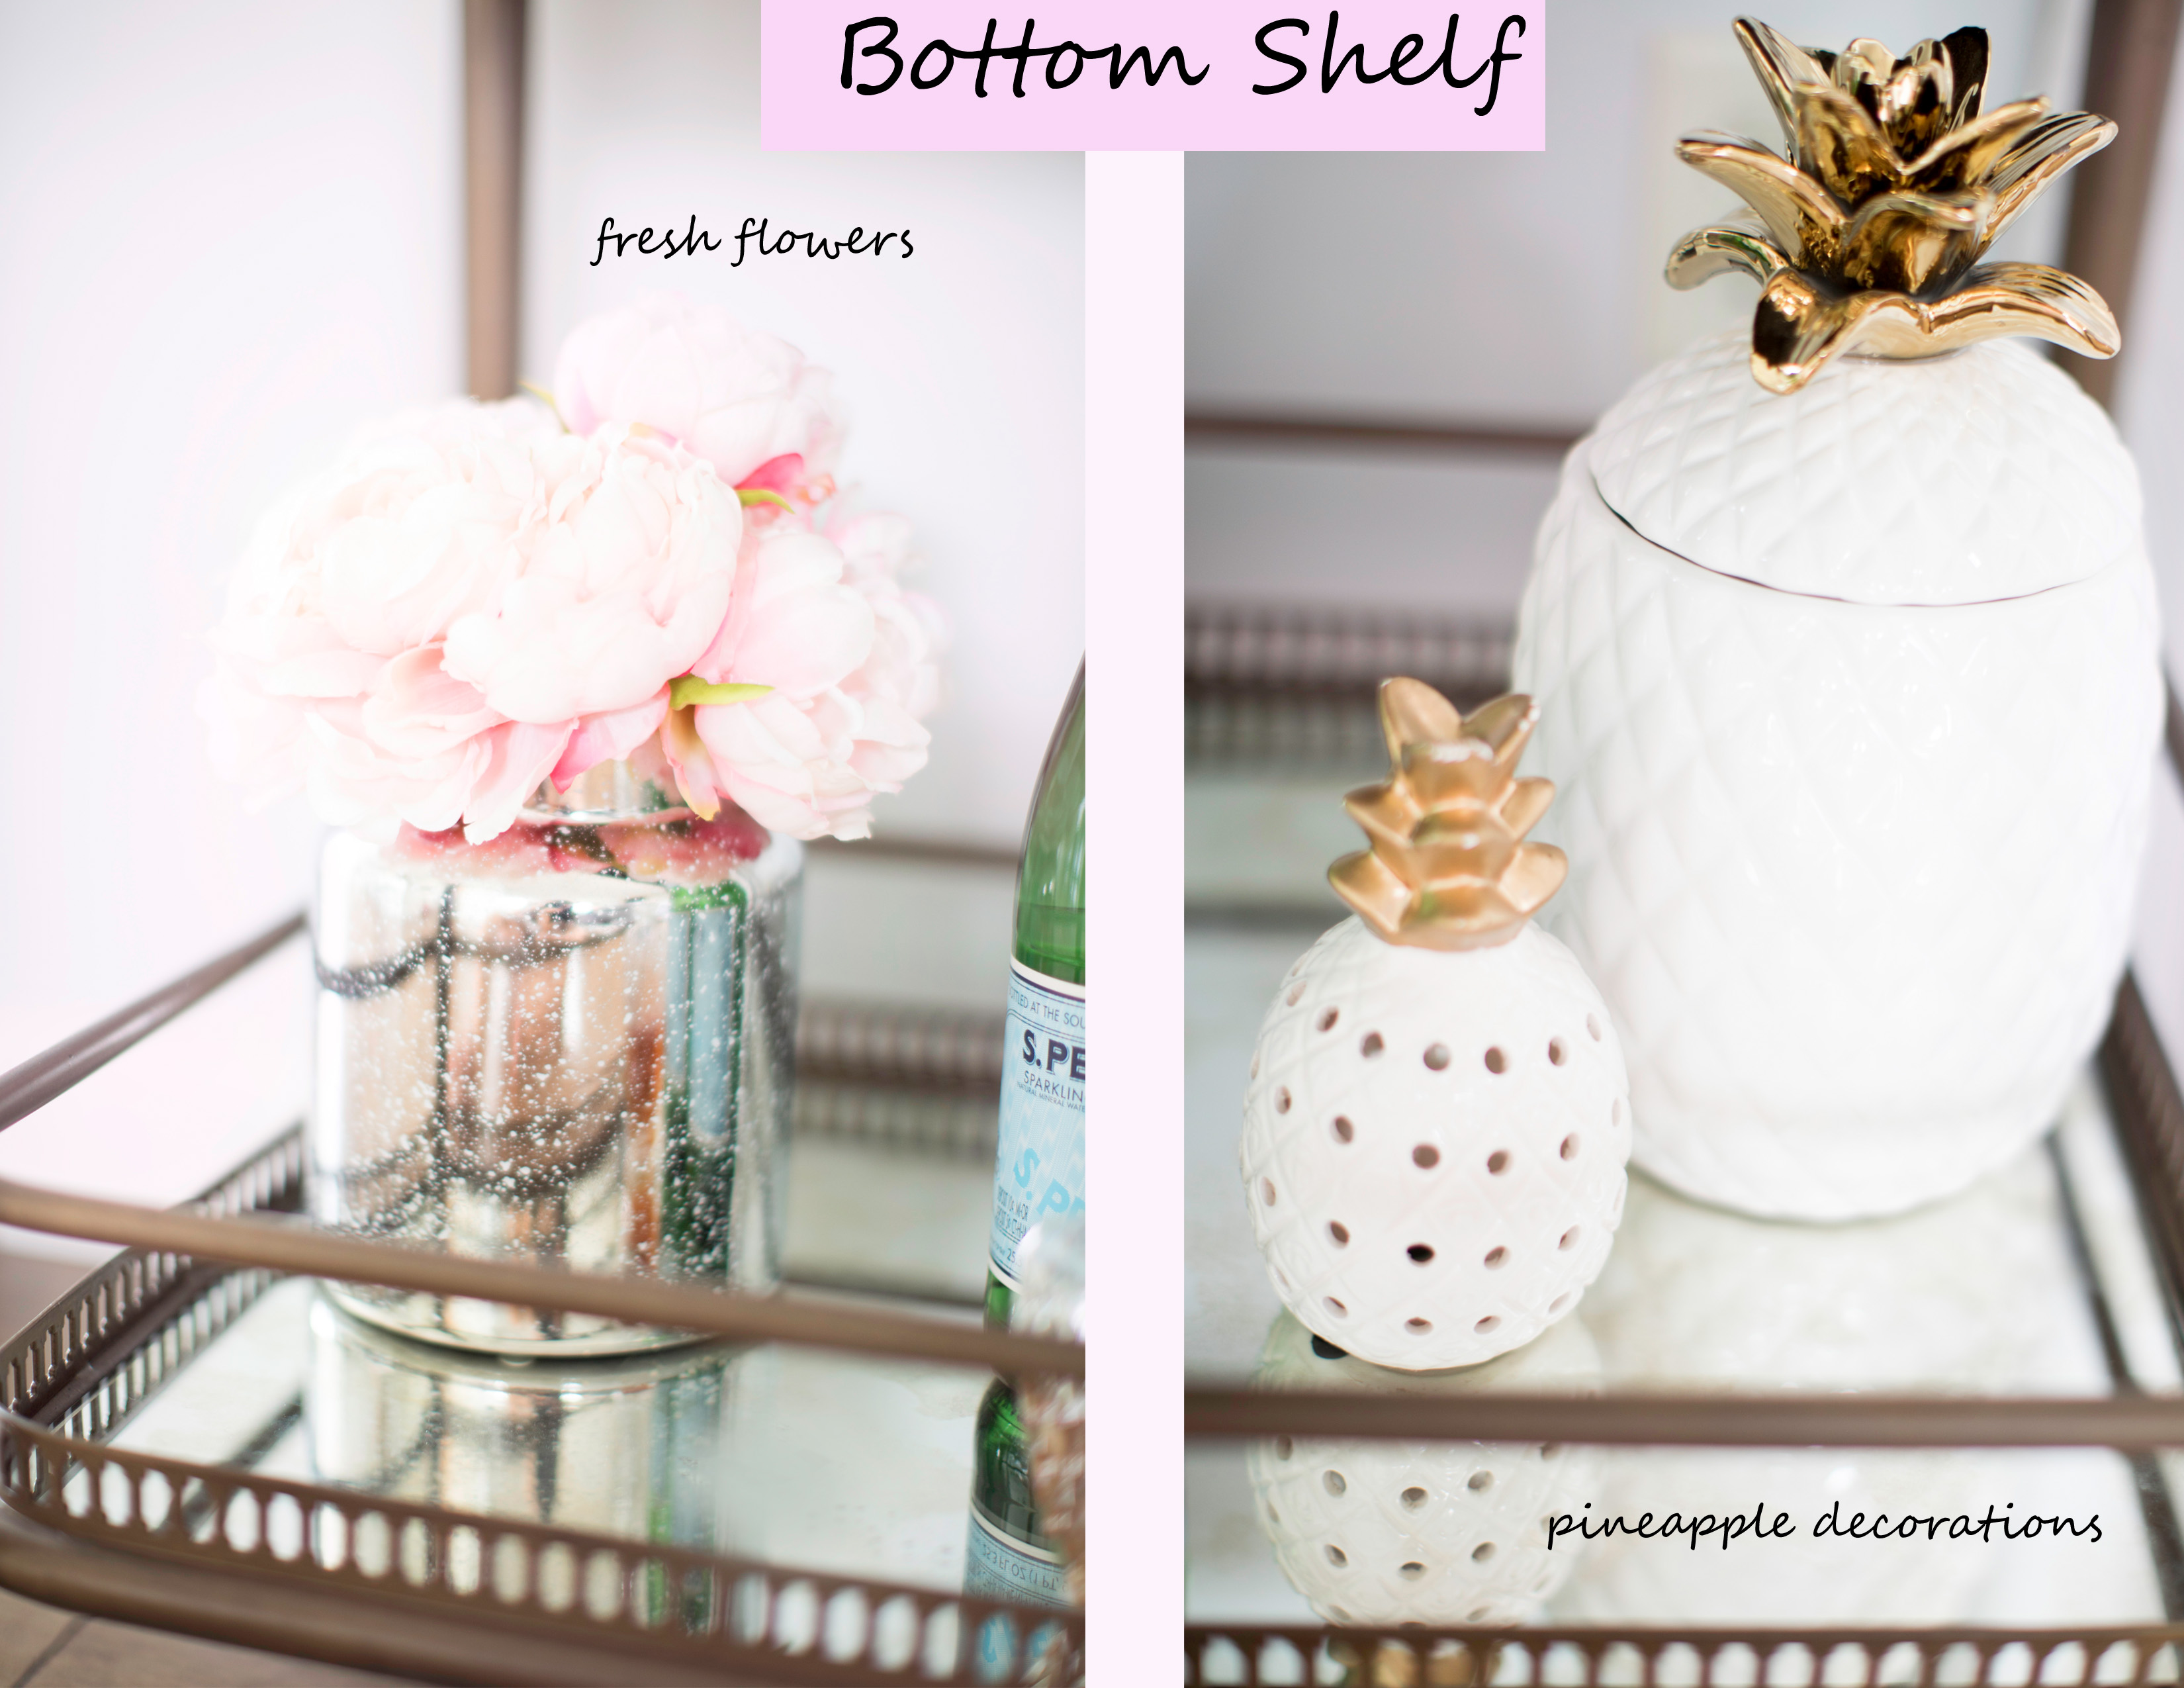 how to style a bar cart from soft surroundings, interior design, bar cart design, bar cart styling idea